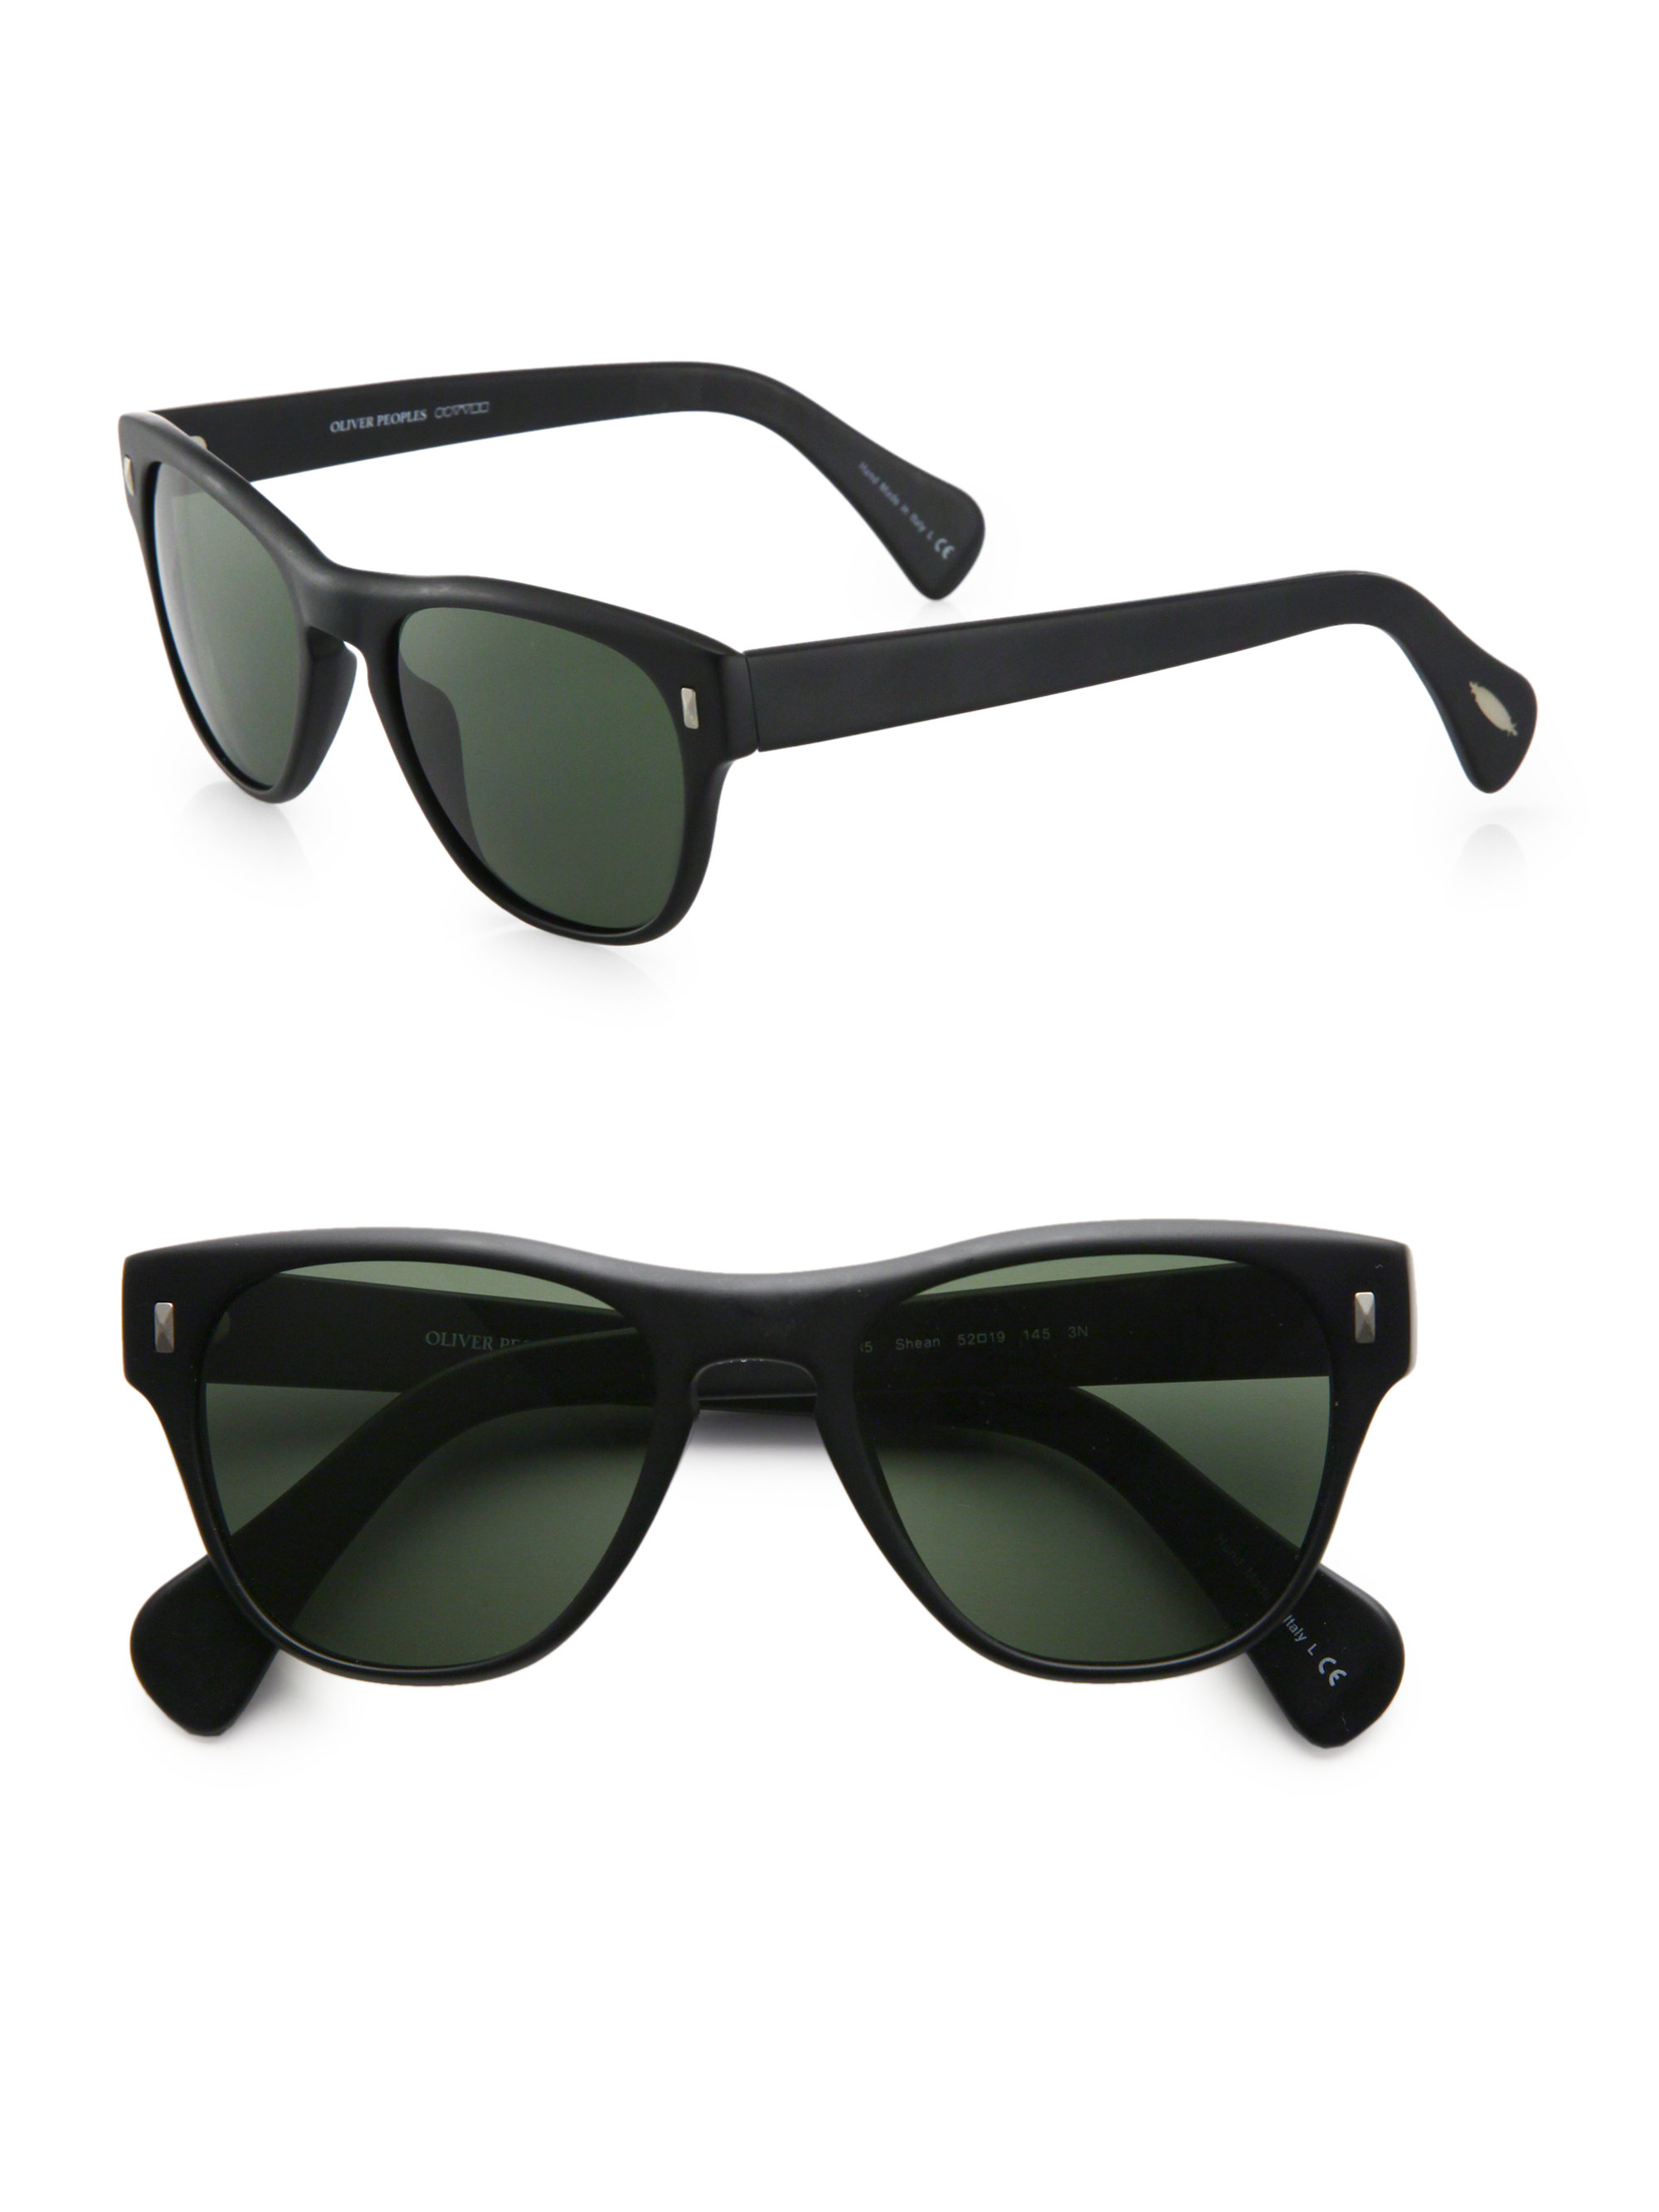 660315e401 Lyst - Oliver Peoples Shean Acetate Sunglasses in Black for Men